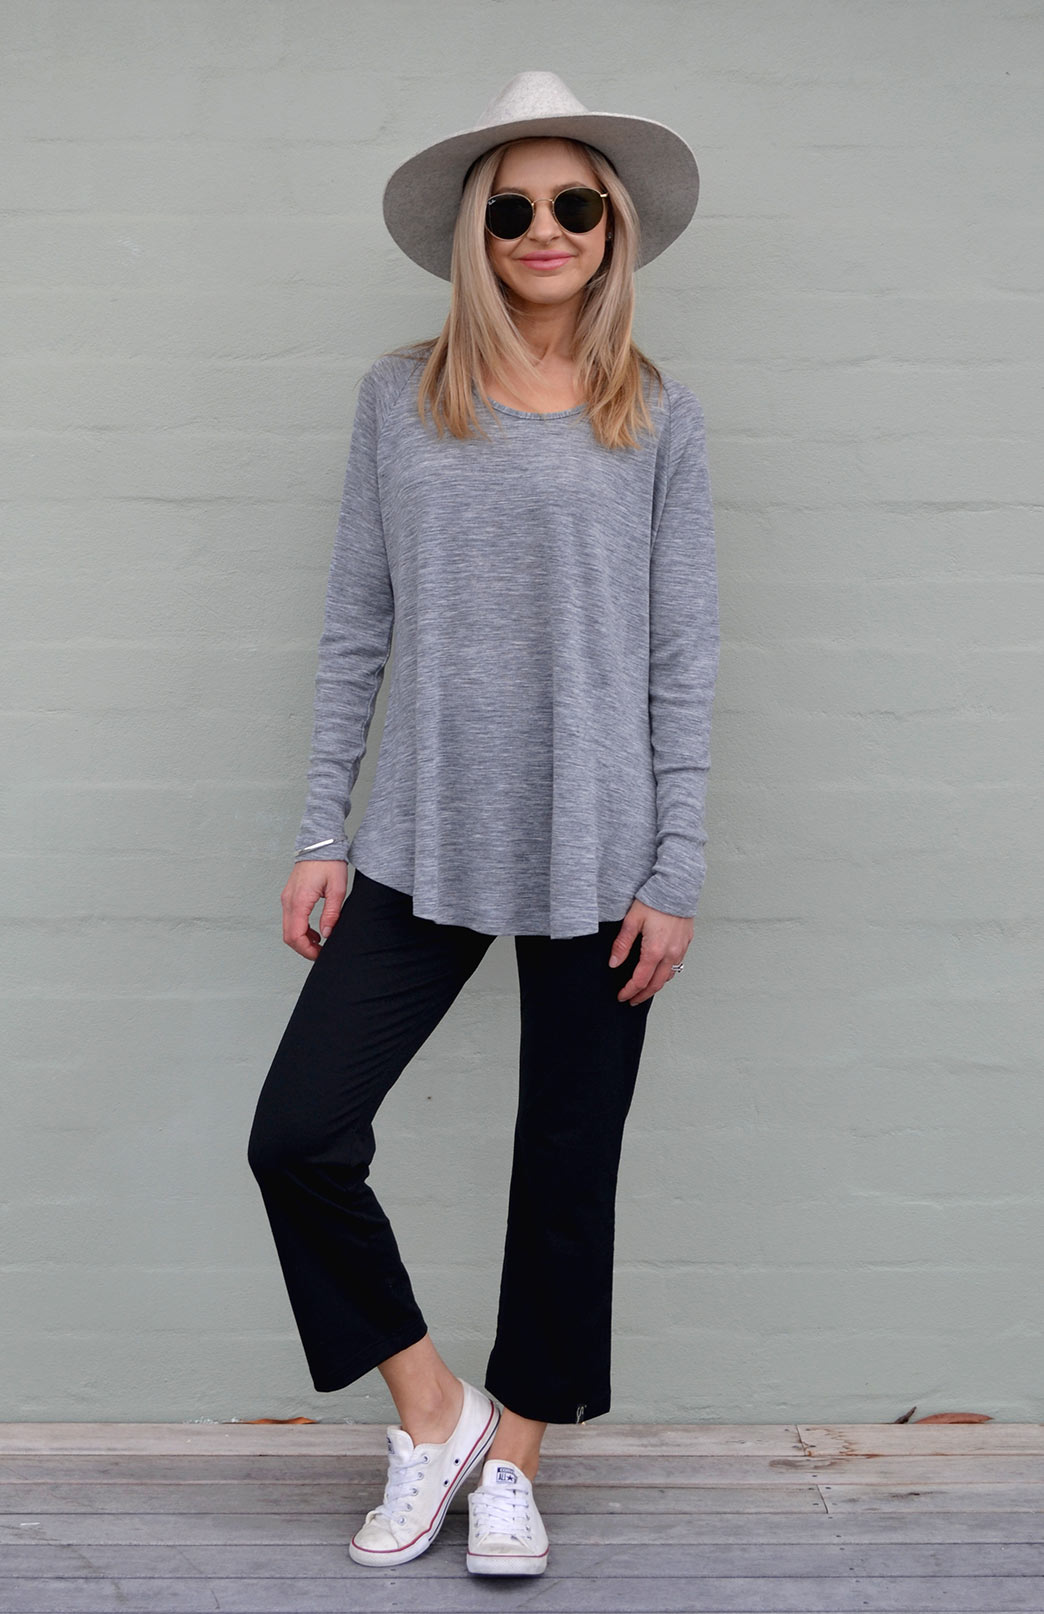 Rana Top - Women's Soft Grey Pure Merino Wool Top with Long Sleeves, Scooped Neckline and Curved Hem - Smitten Merino Tasmania Australia